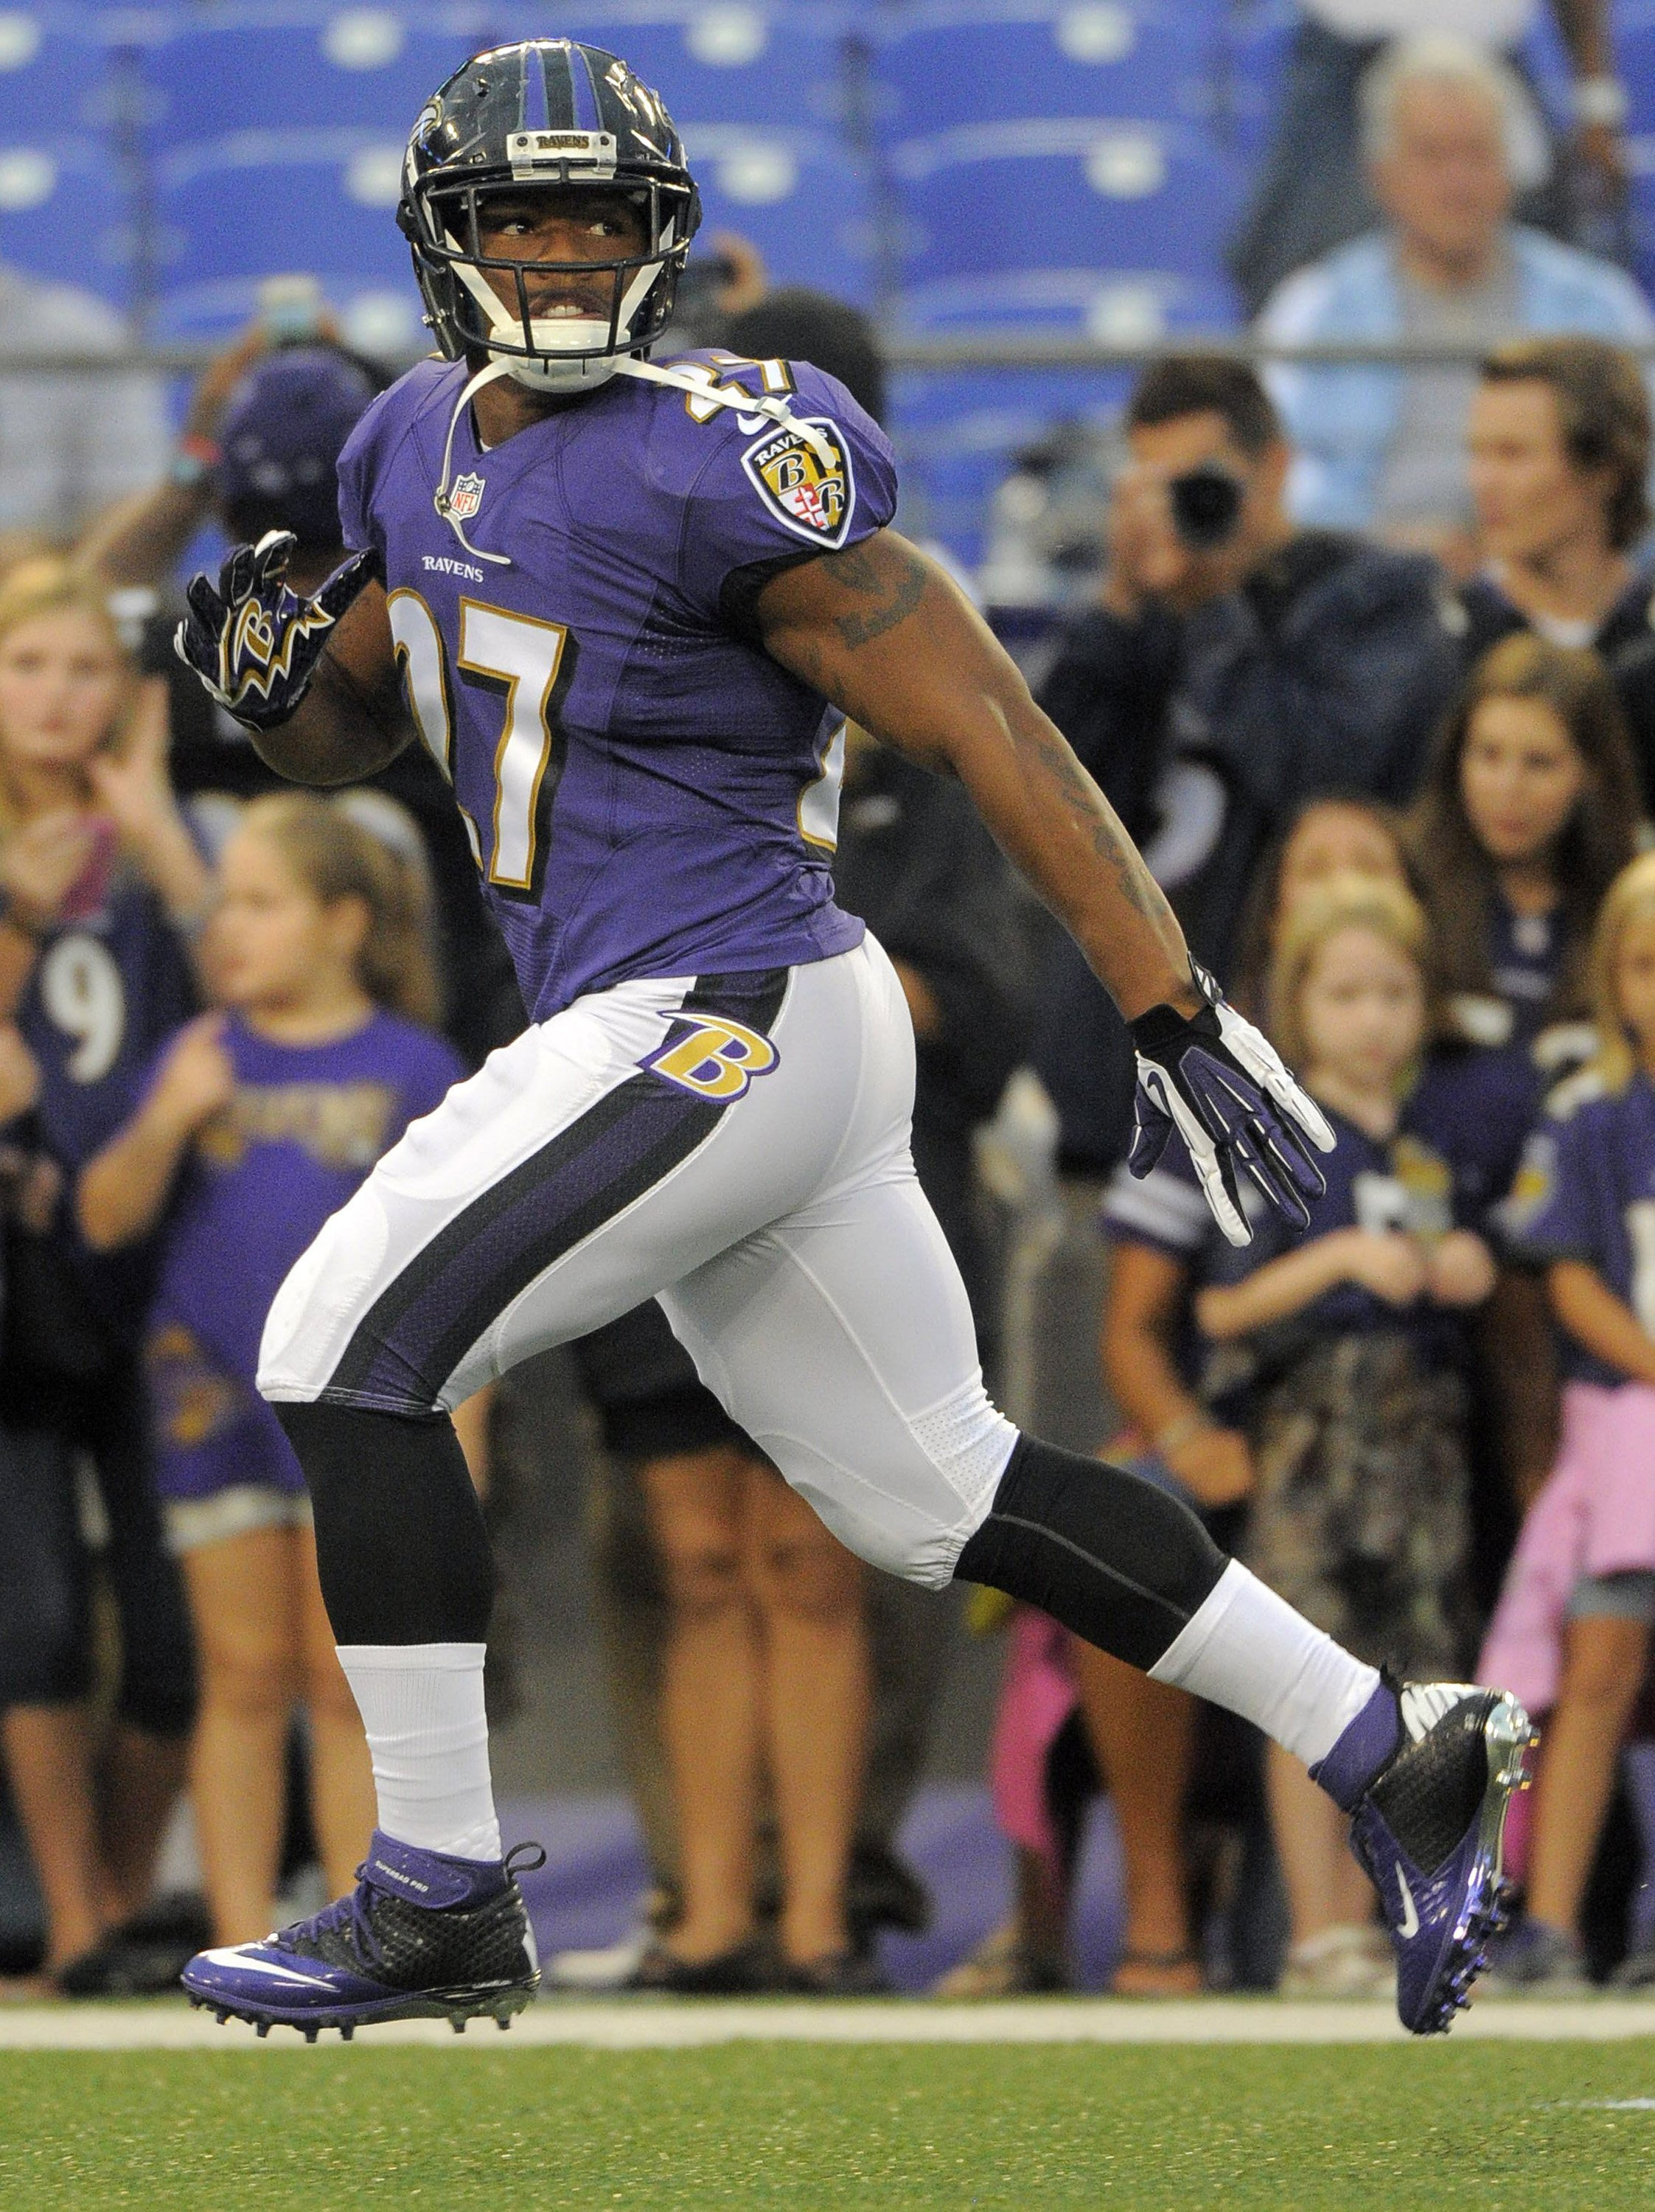 Run away now, Ray: The former Raven is paying a price for his self-regard